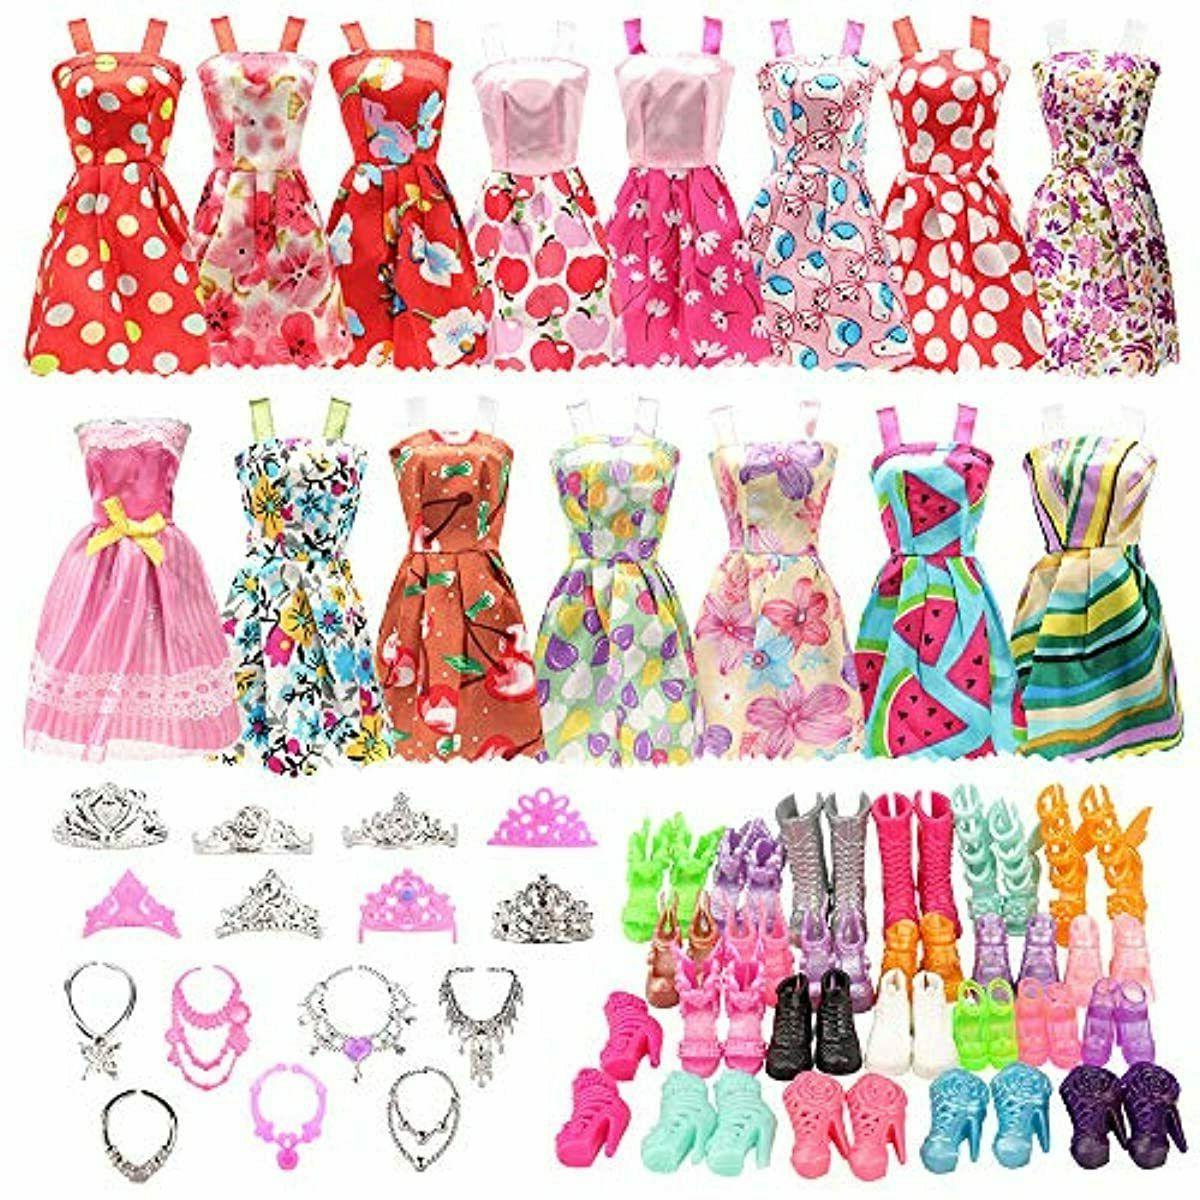 32 pcs doll clothes and accessories 10